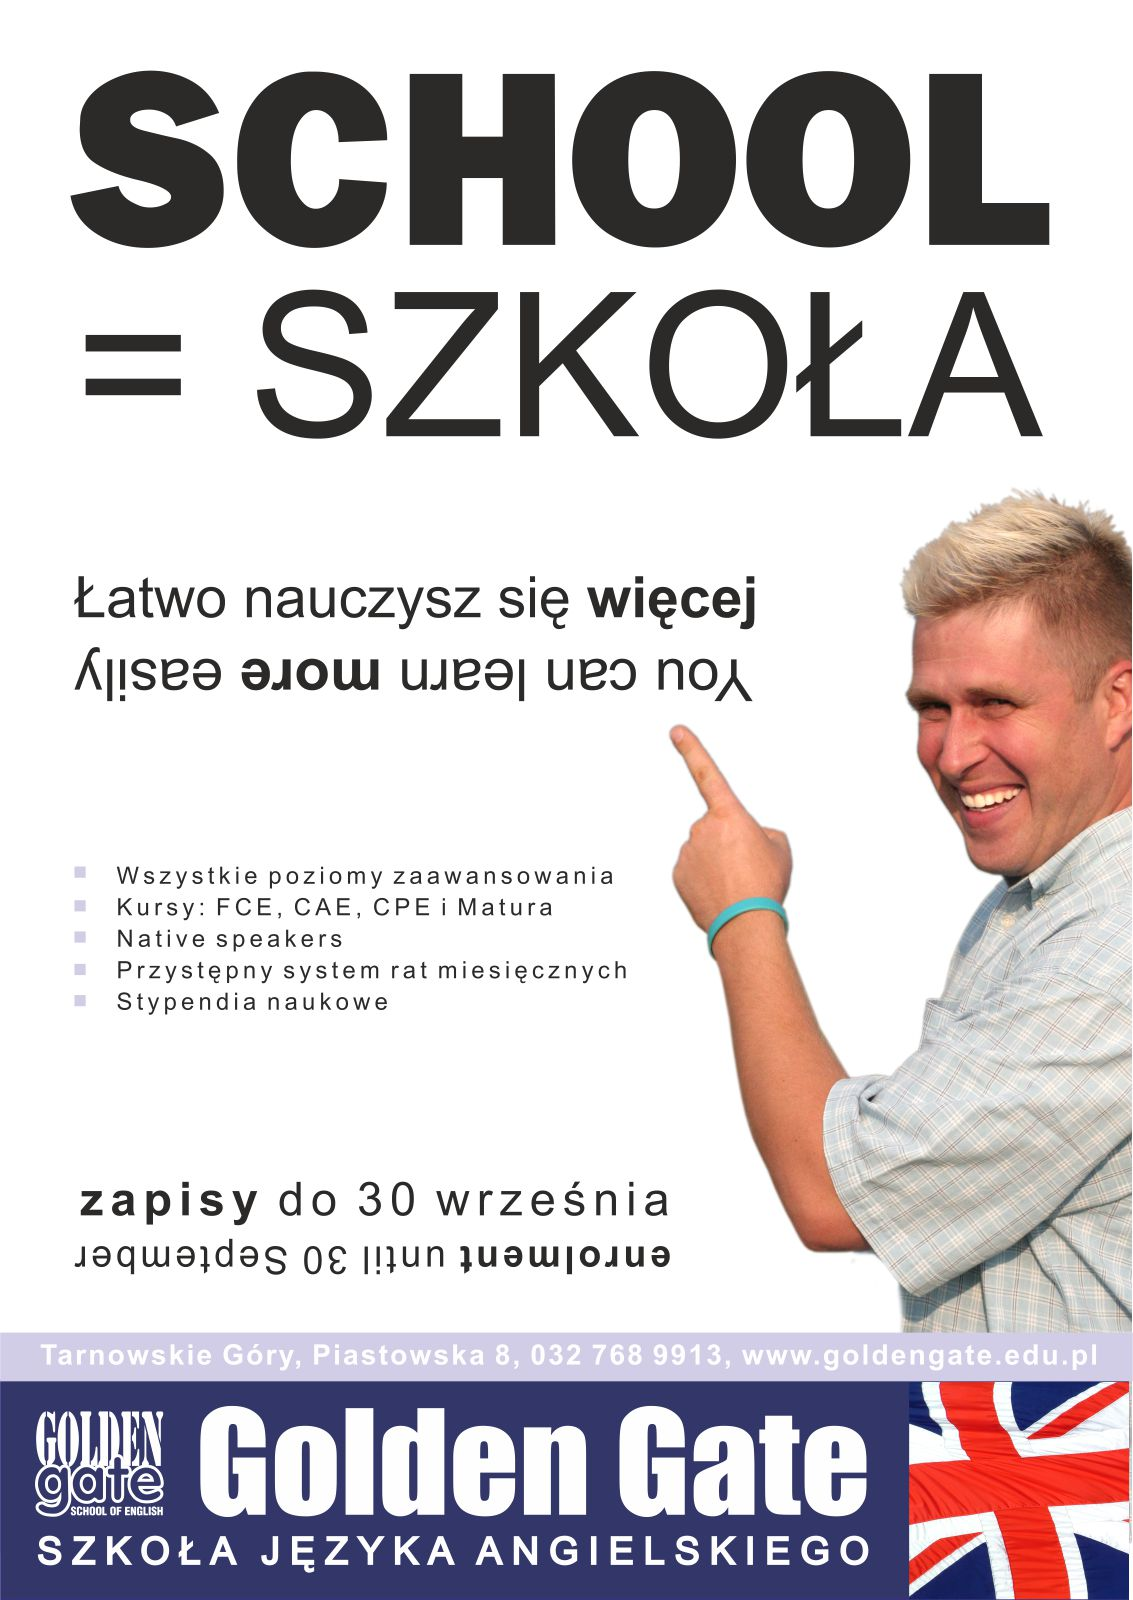 Poster 2006 2007